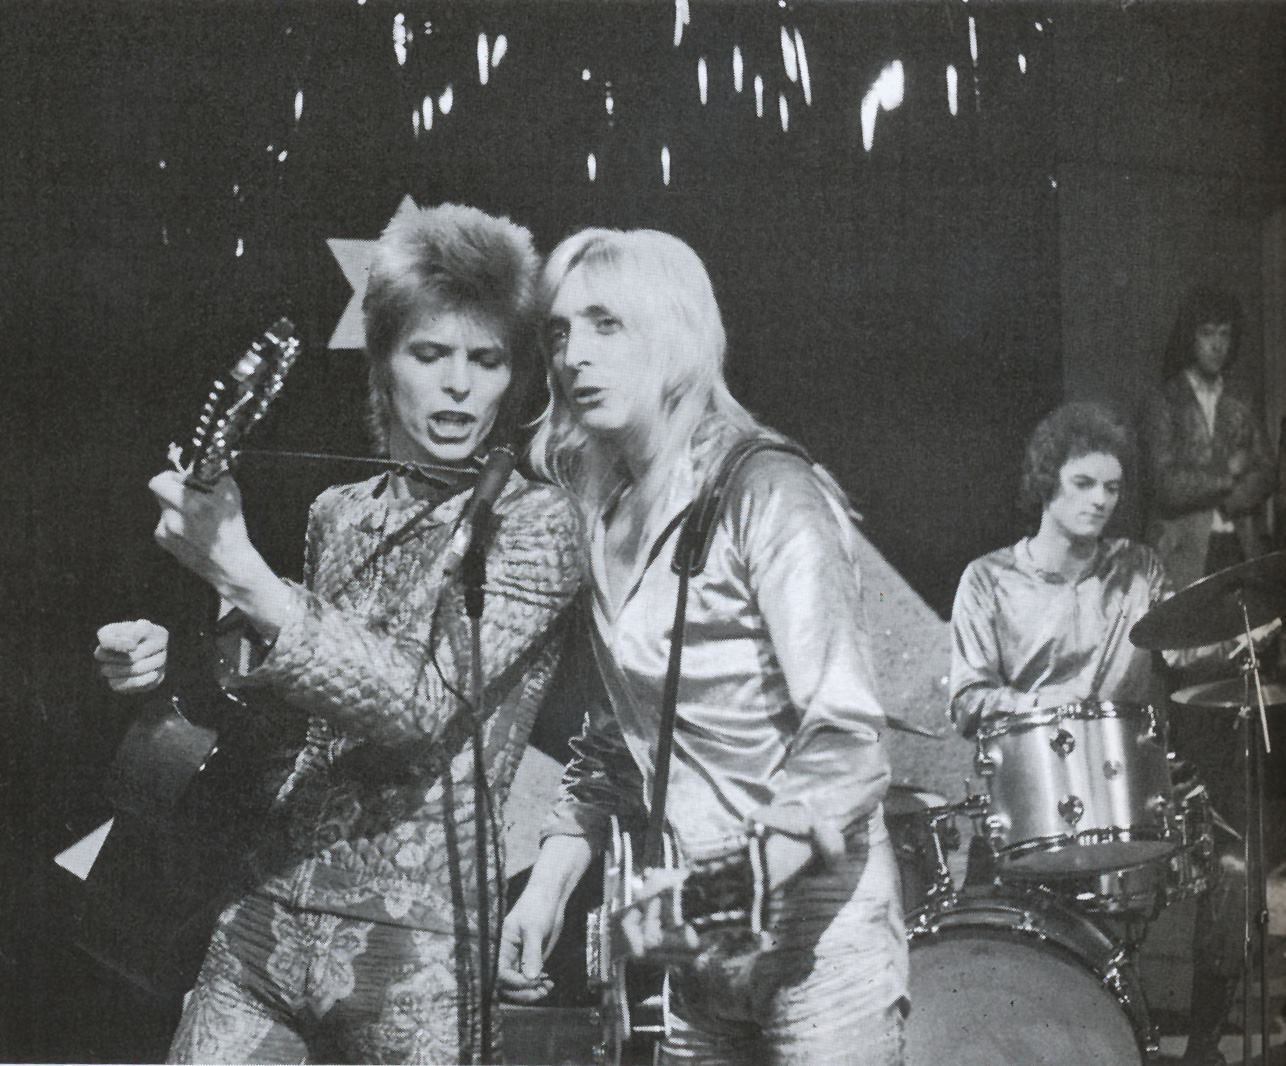 Ziggy Stardust and The Spiders from Mars en la BBC (a la derecha de Bowie, Mick Ronson), julio, 1972